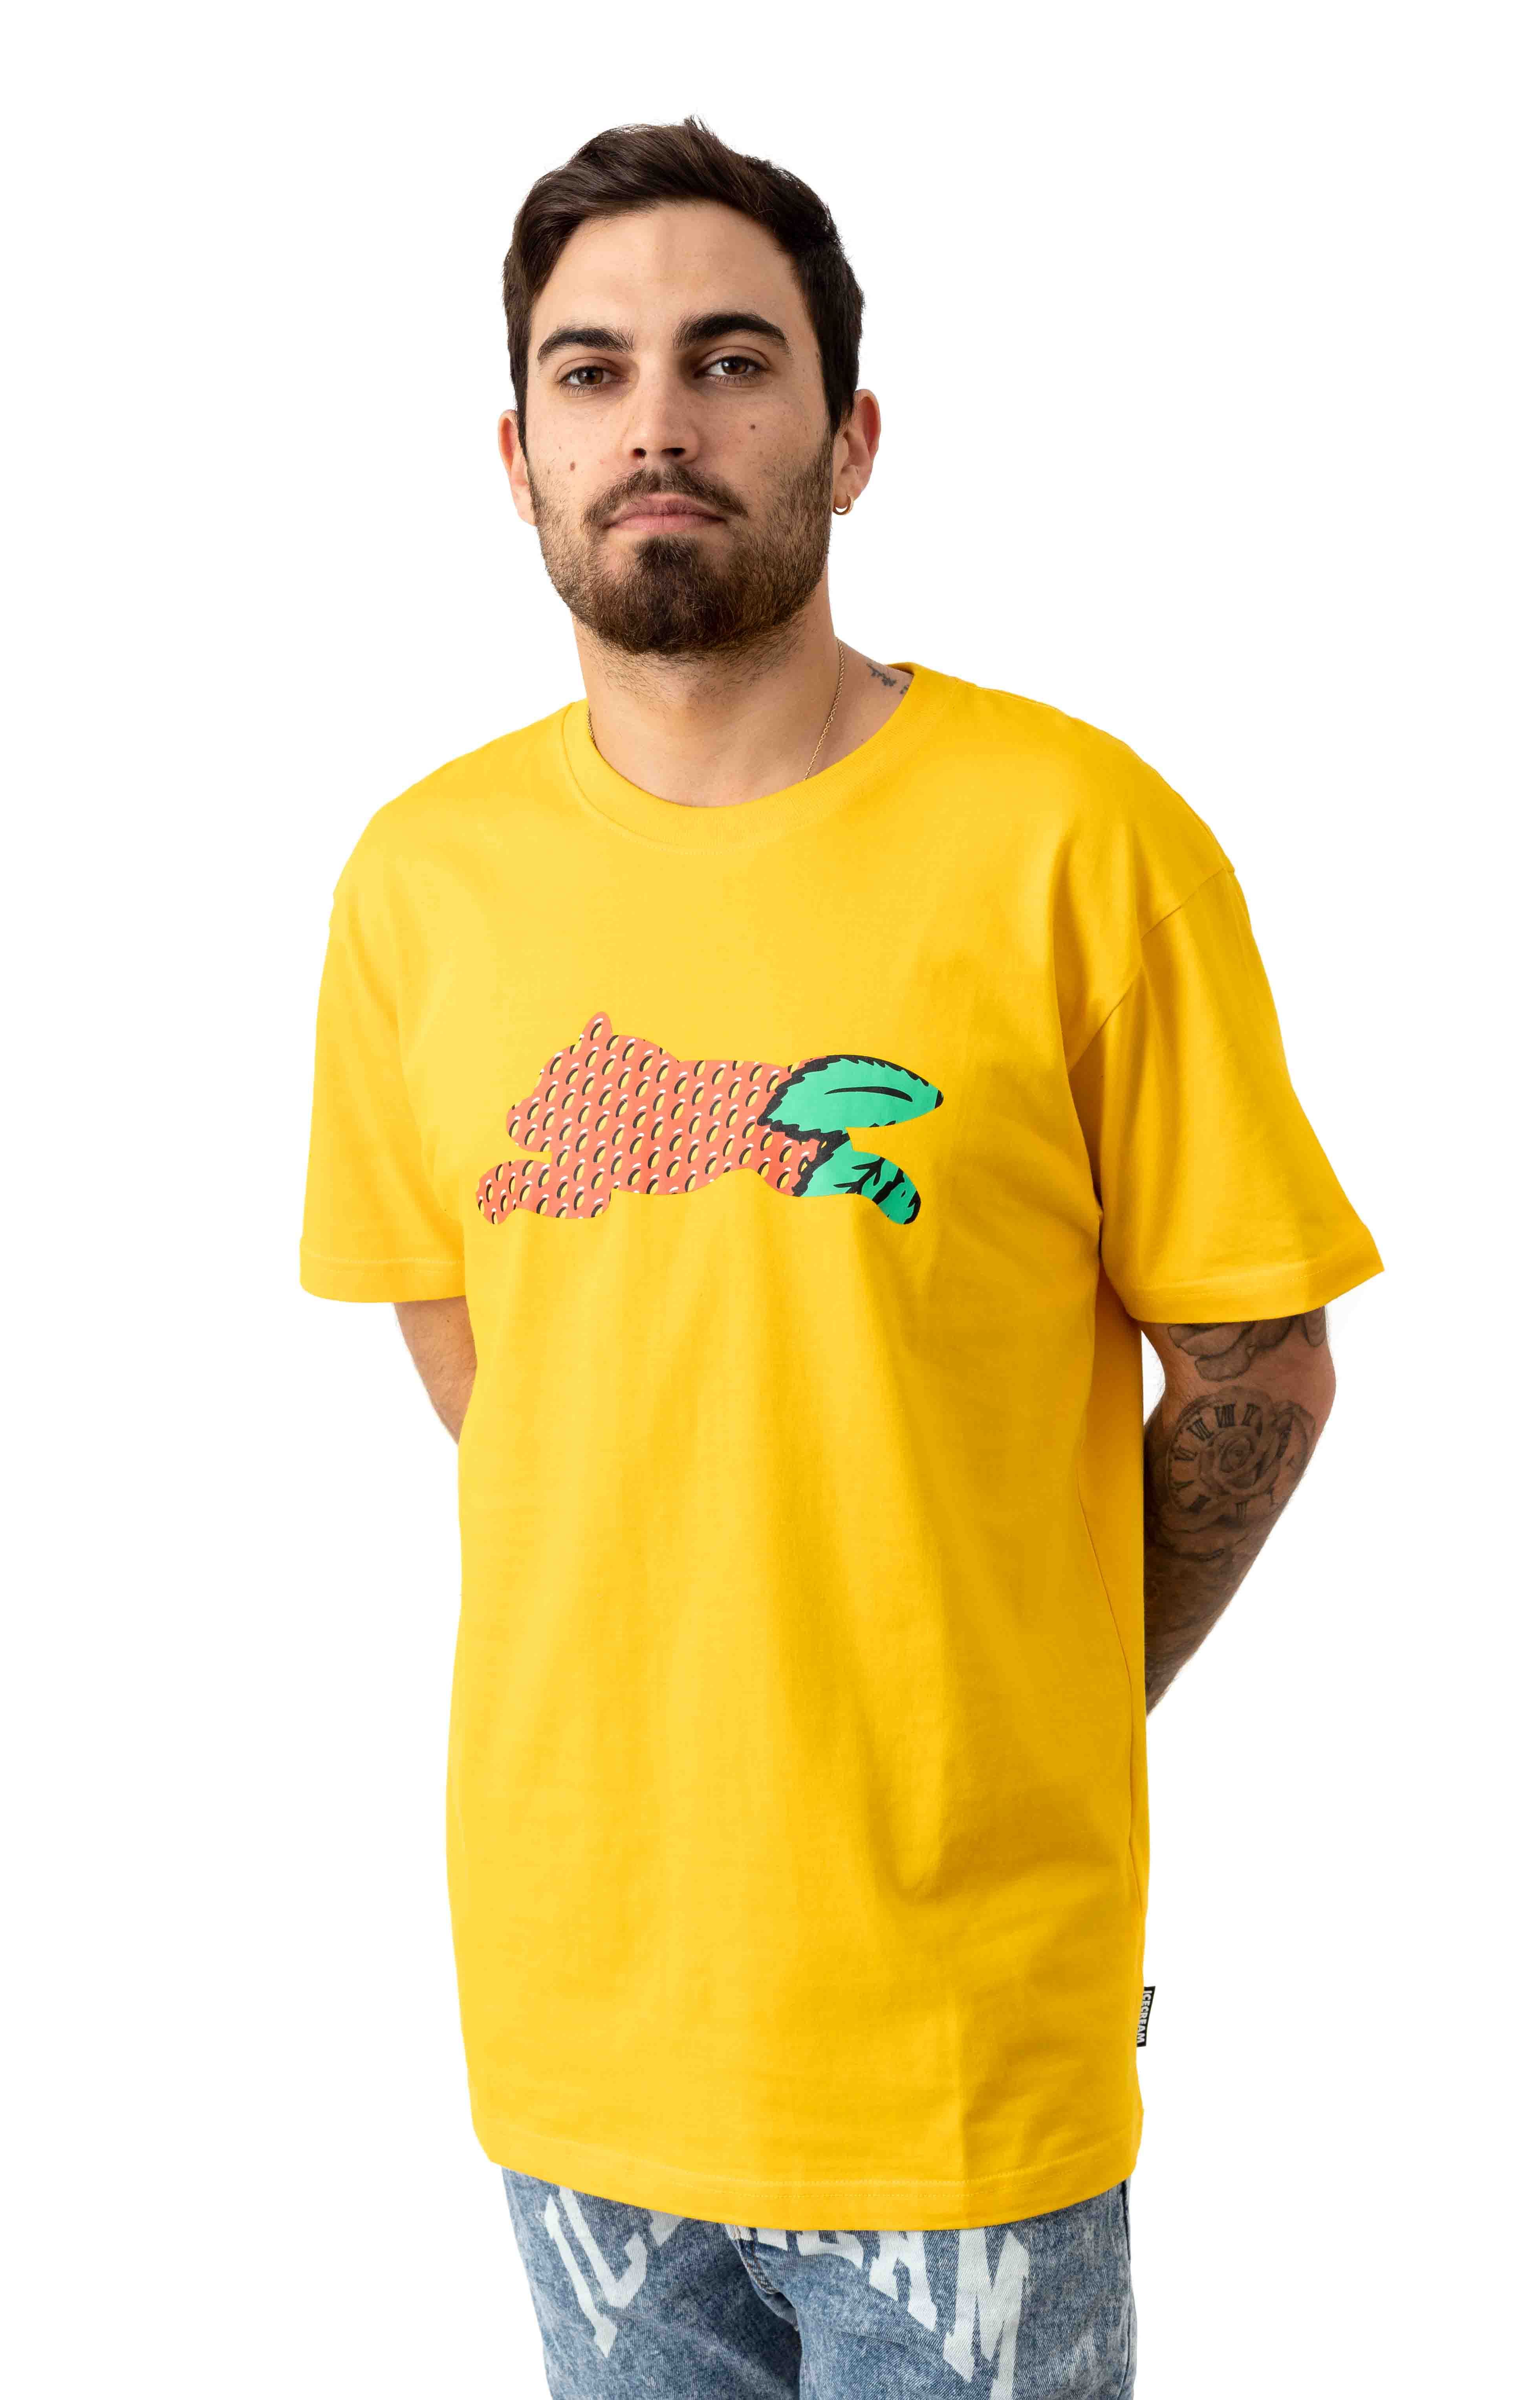 Seeds T-Shirt - Lemon Chrome